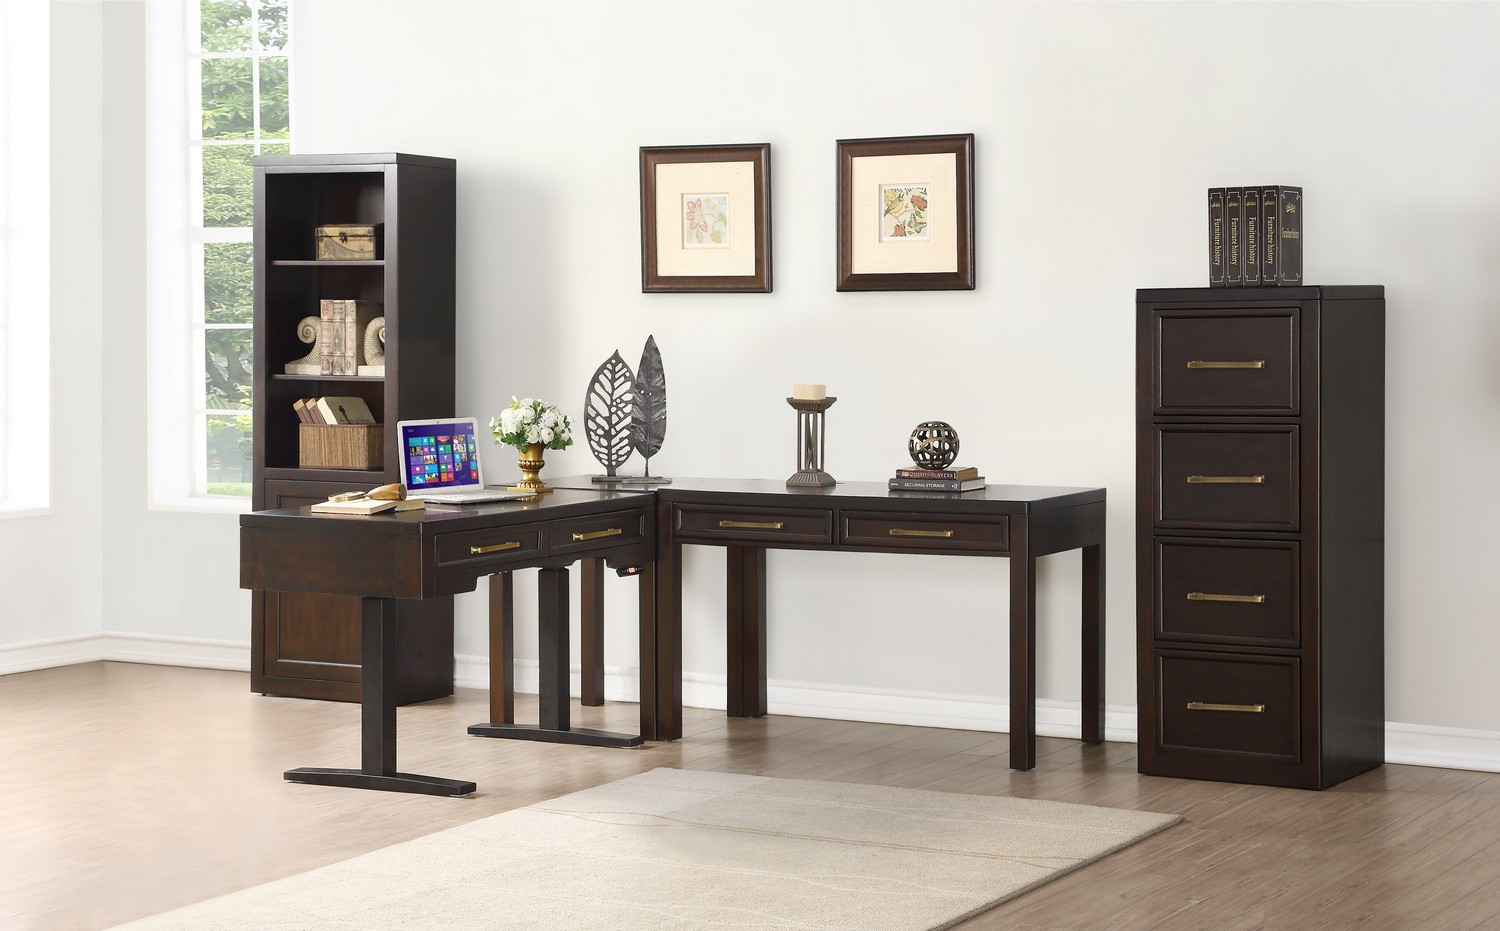 Parker House Greenwich Home Office Set 1 - Dark Walnut